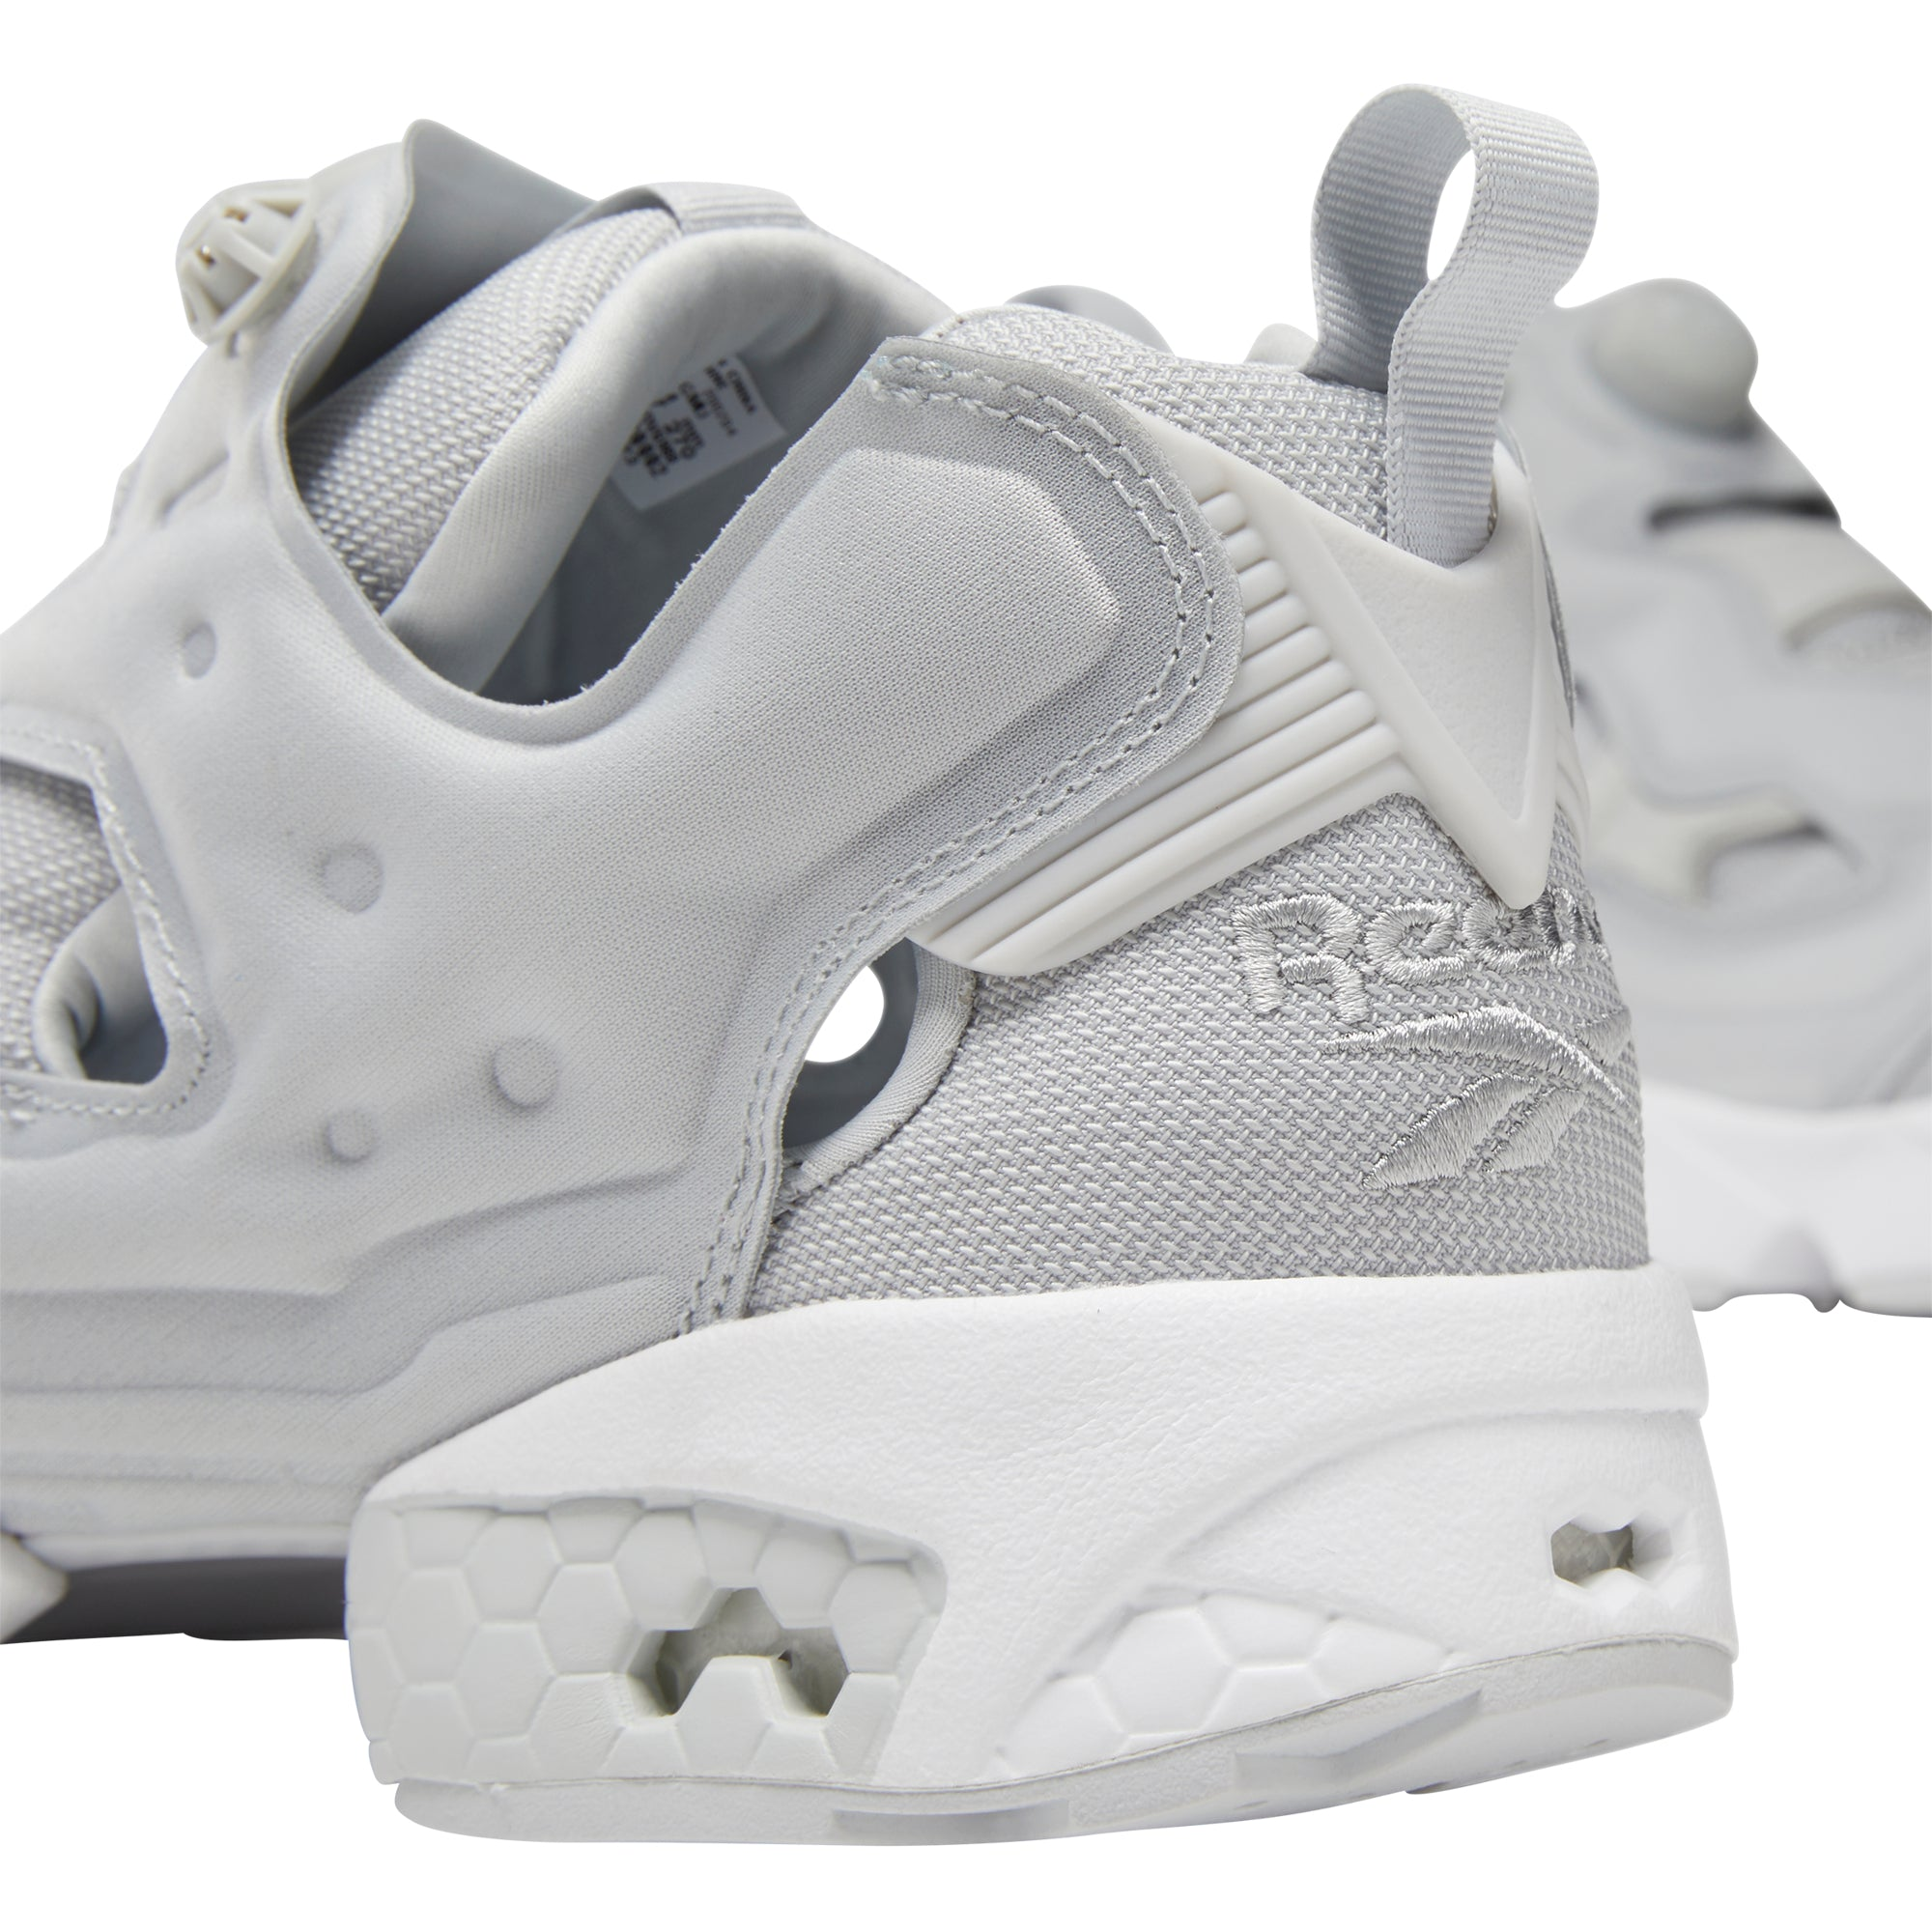 REEBOK Instapump Fury OG Shoes - Skull Grey / White